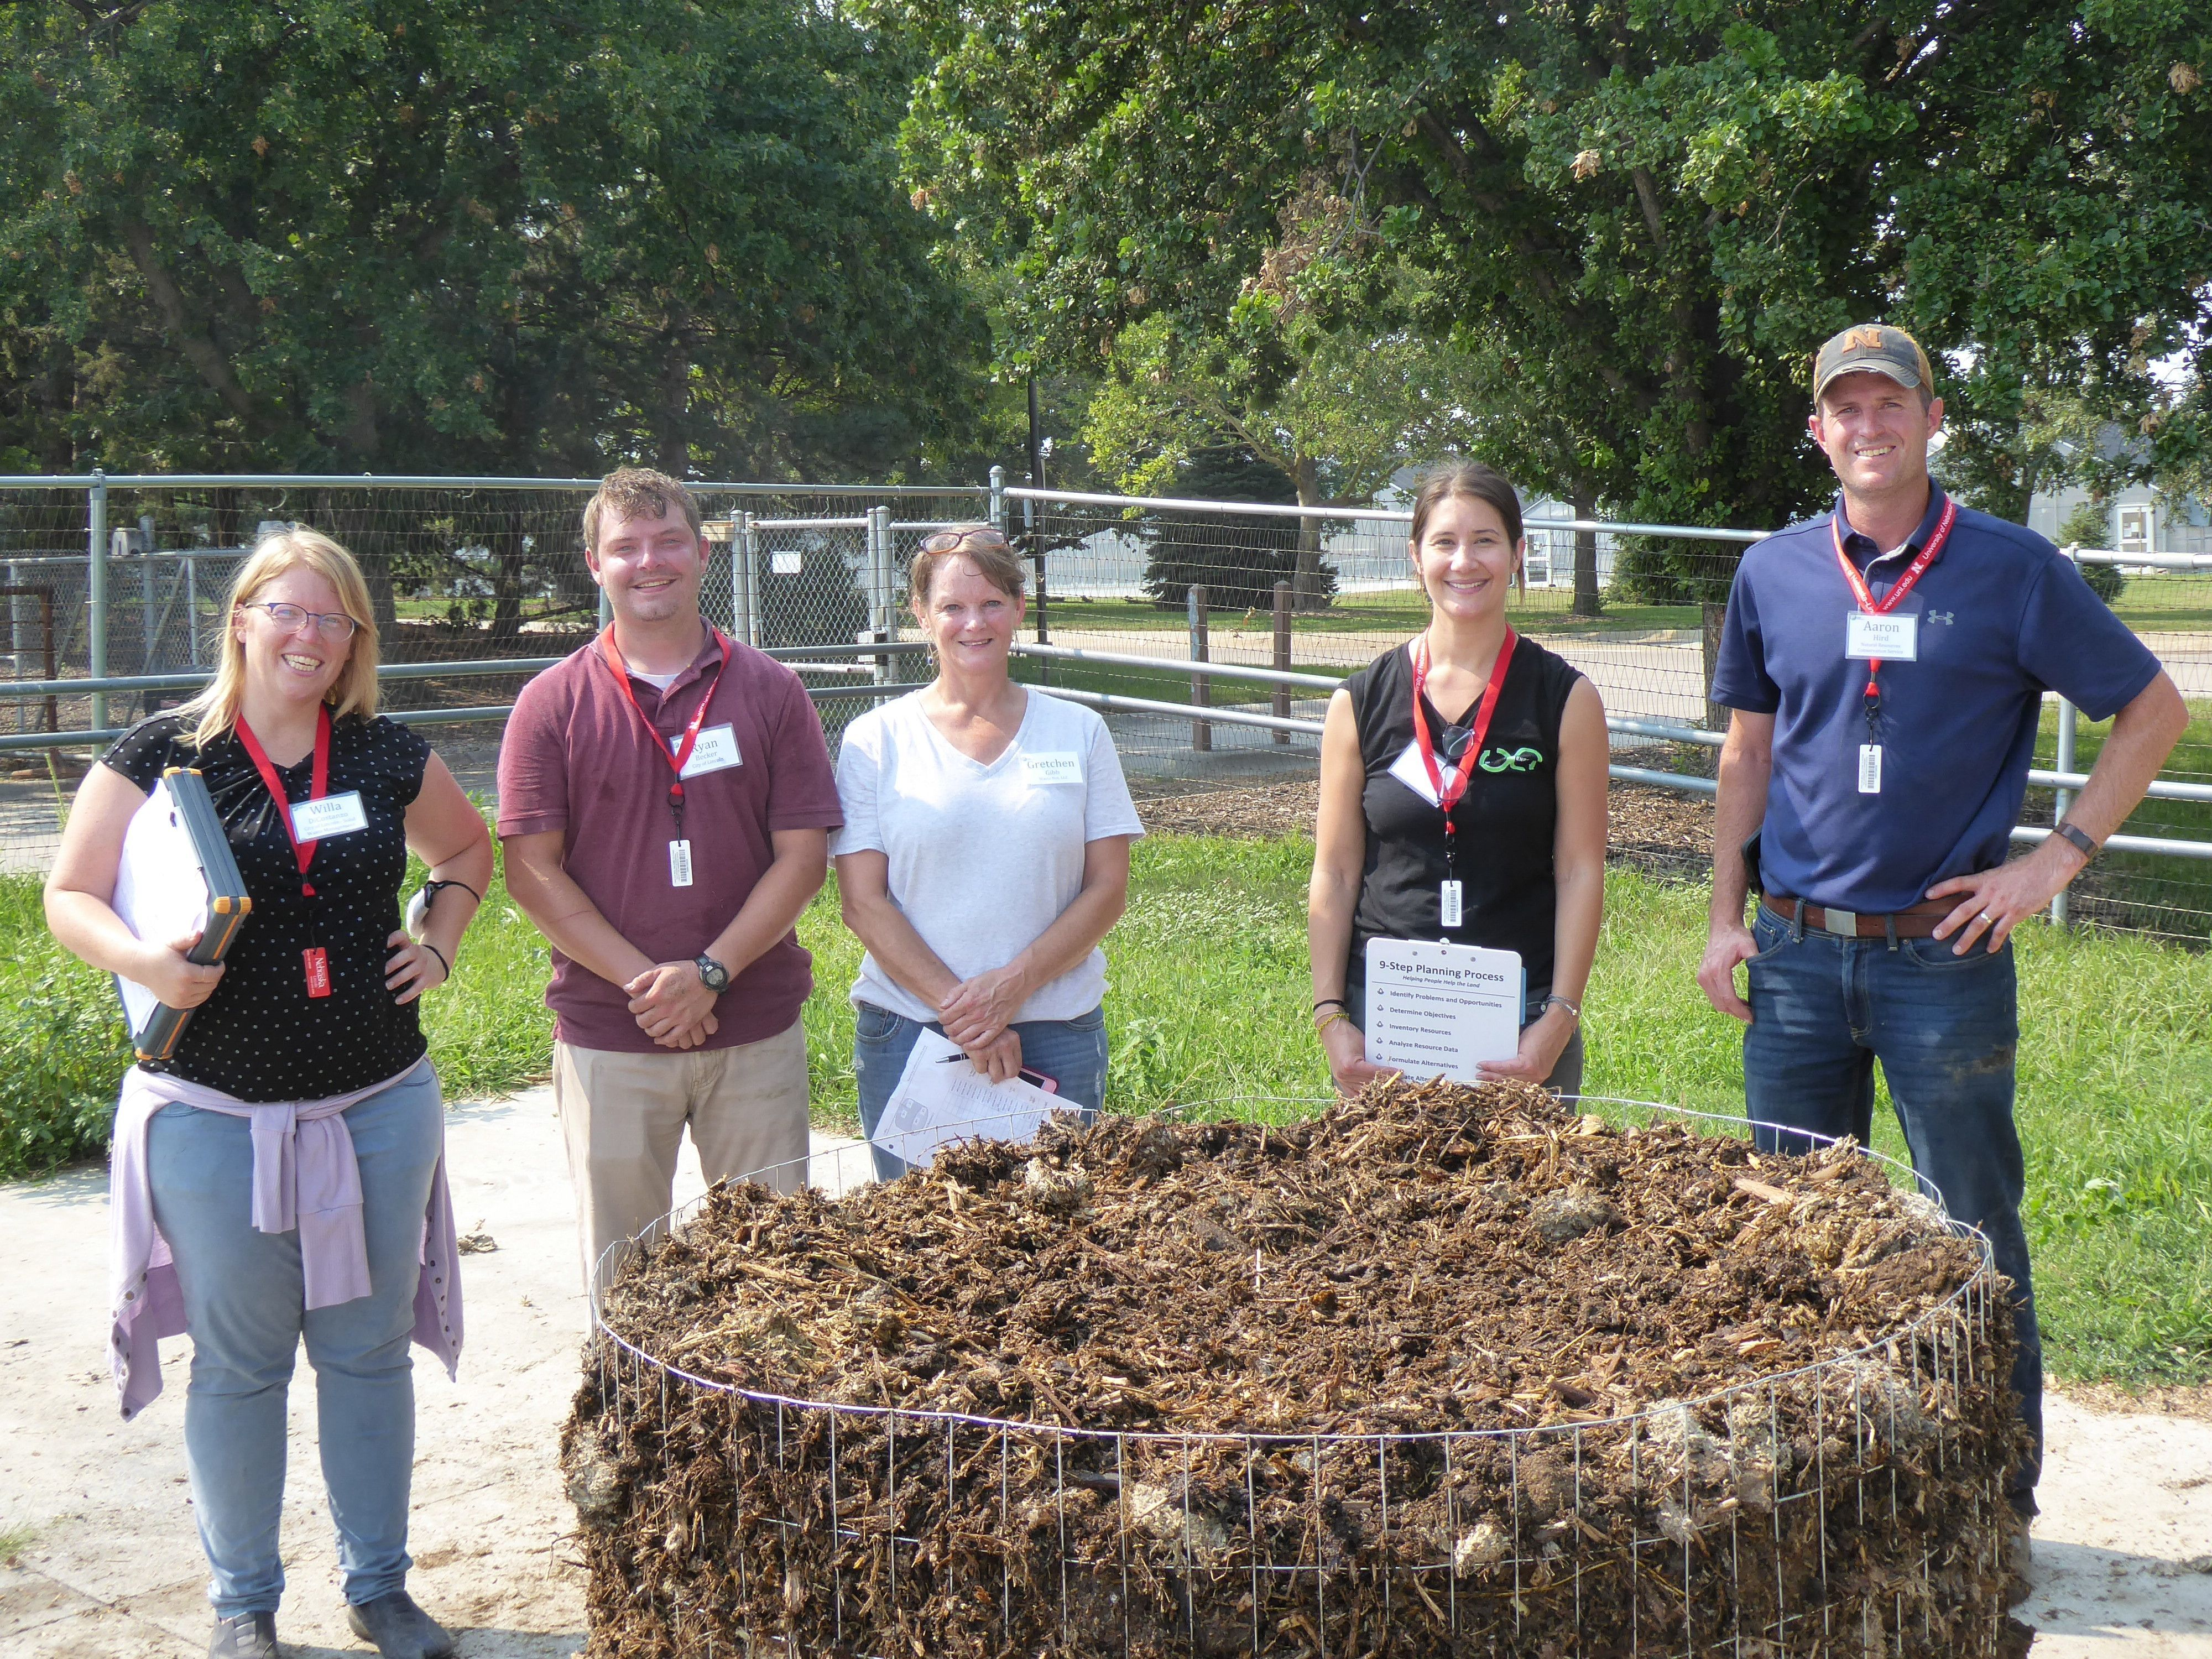 WTEL attends the 2021 Compost Operations Training